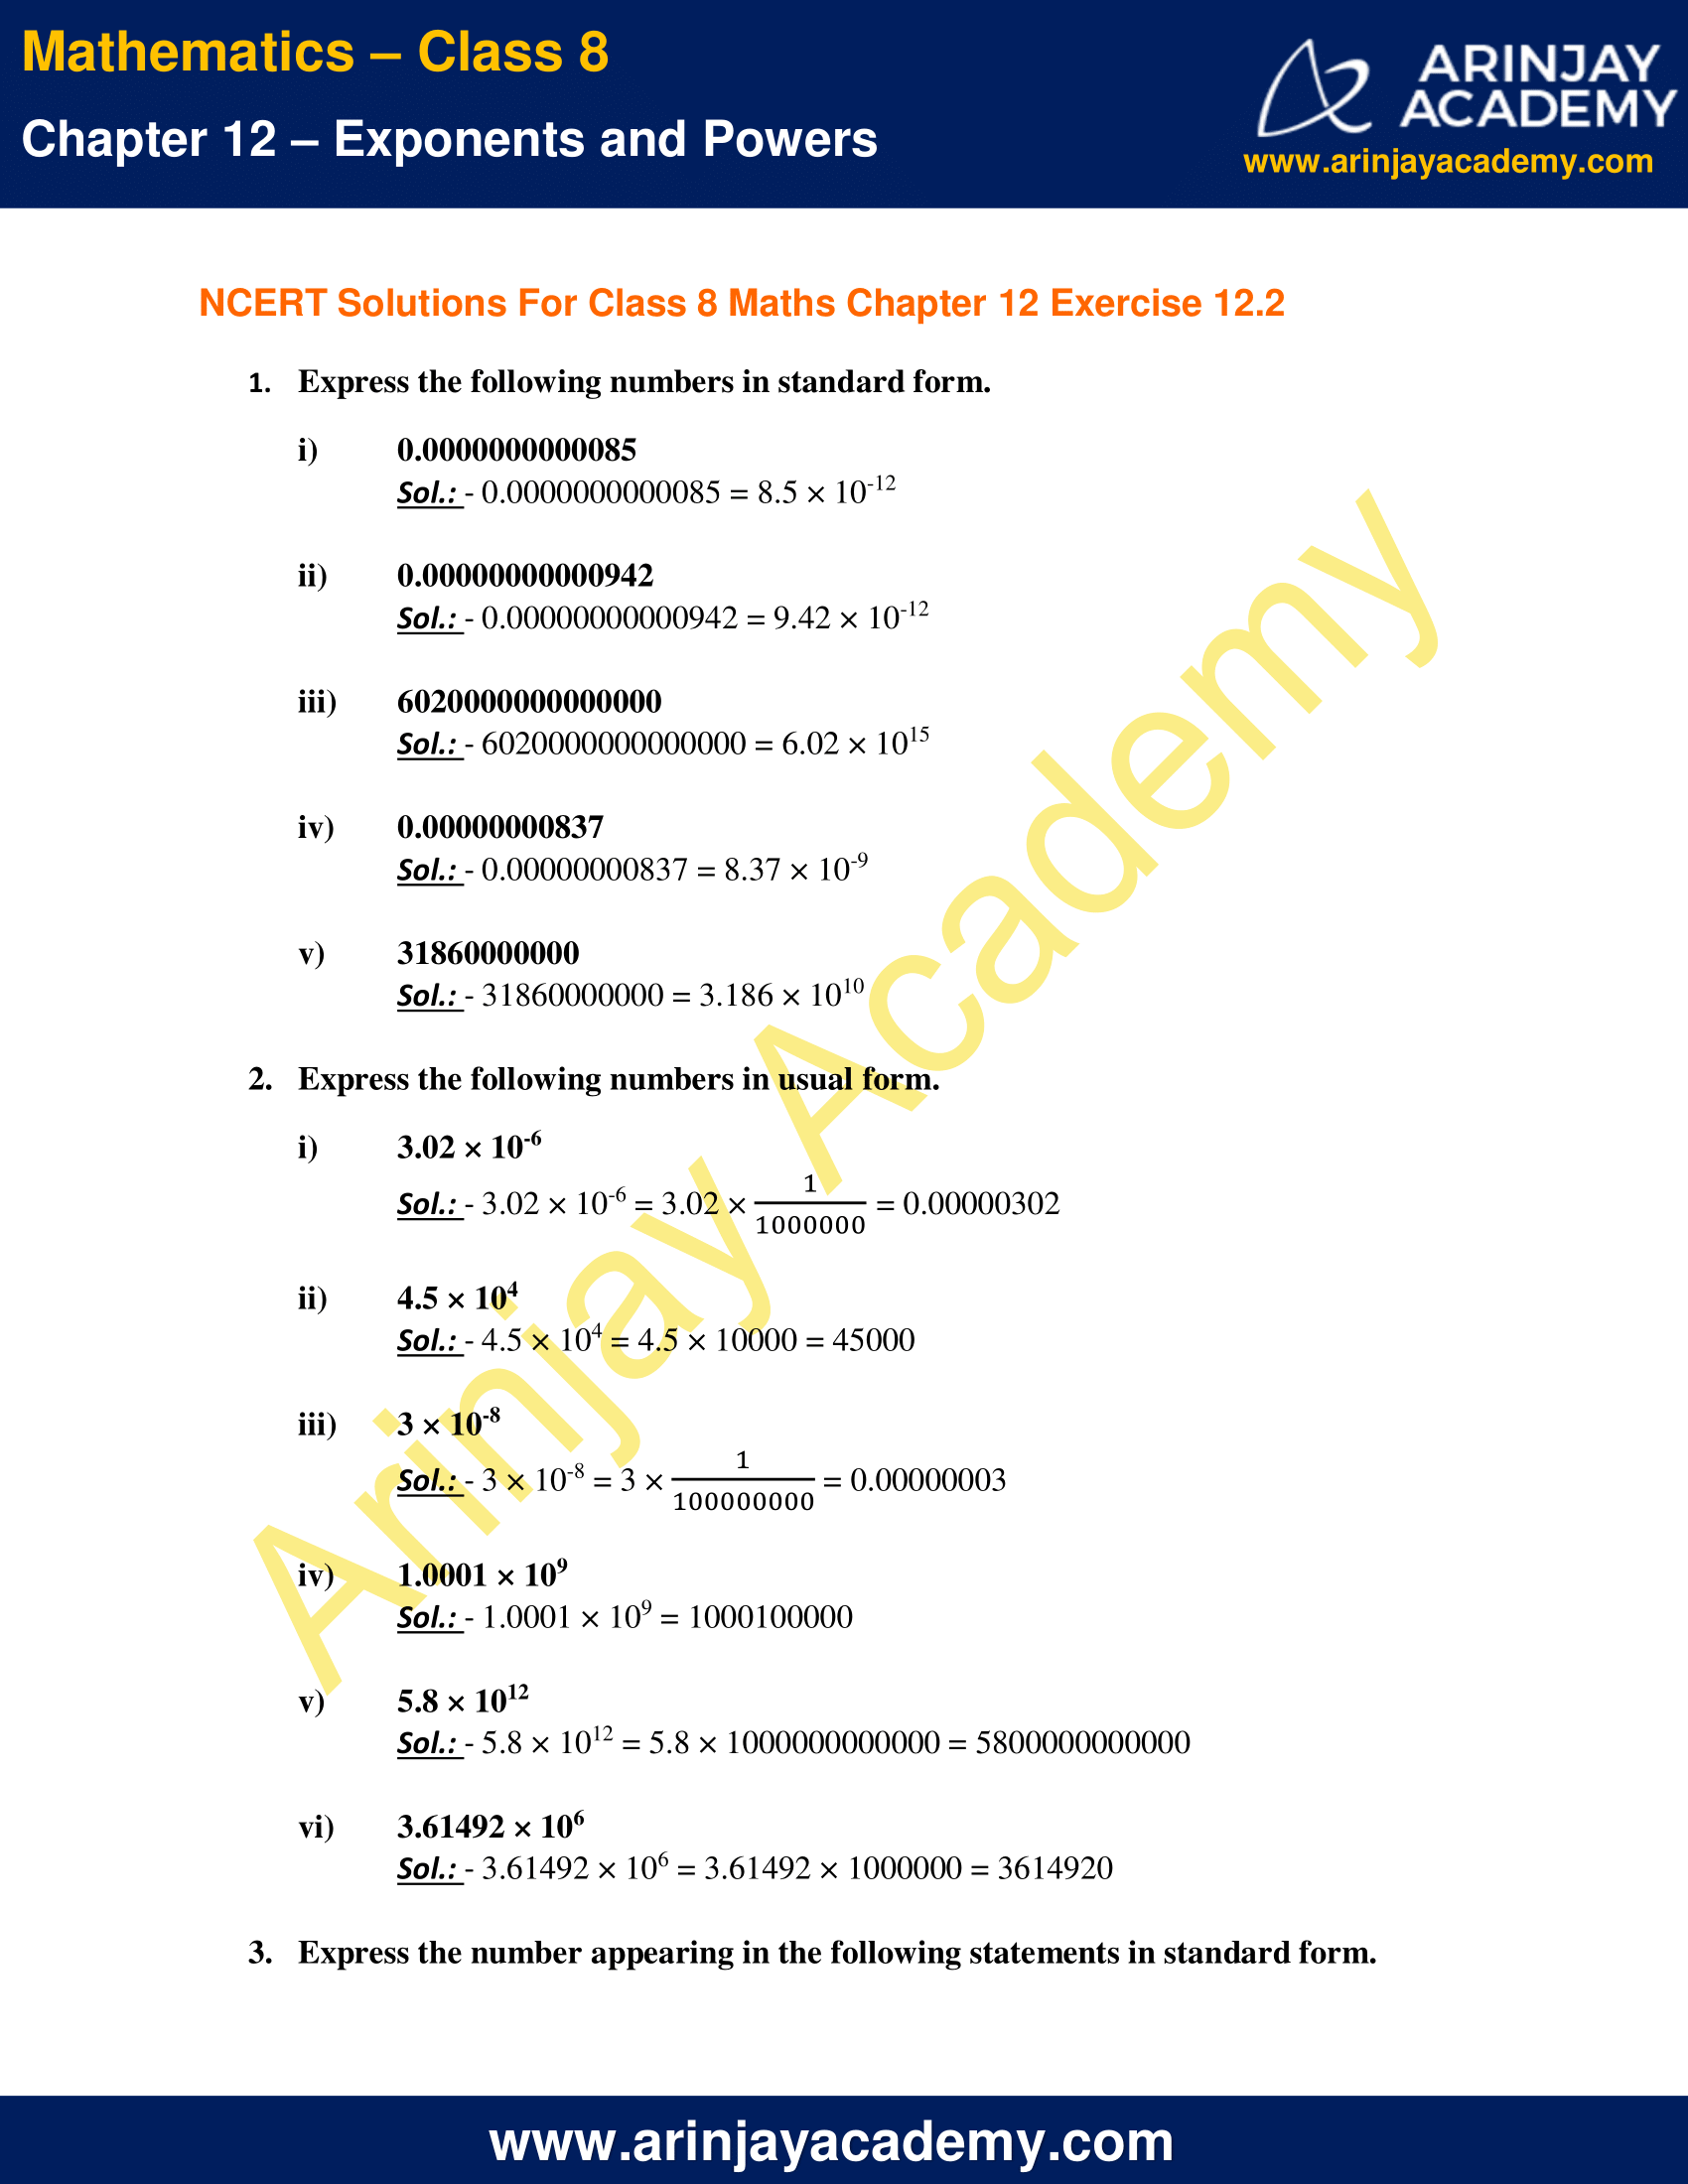 NCERT Solutions for Class 8 Maths Chapter 12 Exercise 12.2 image 1